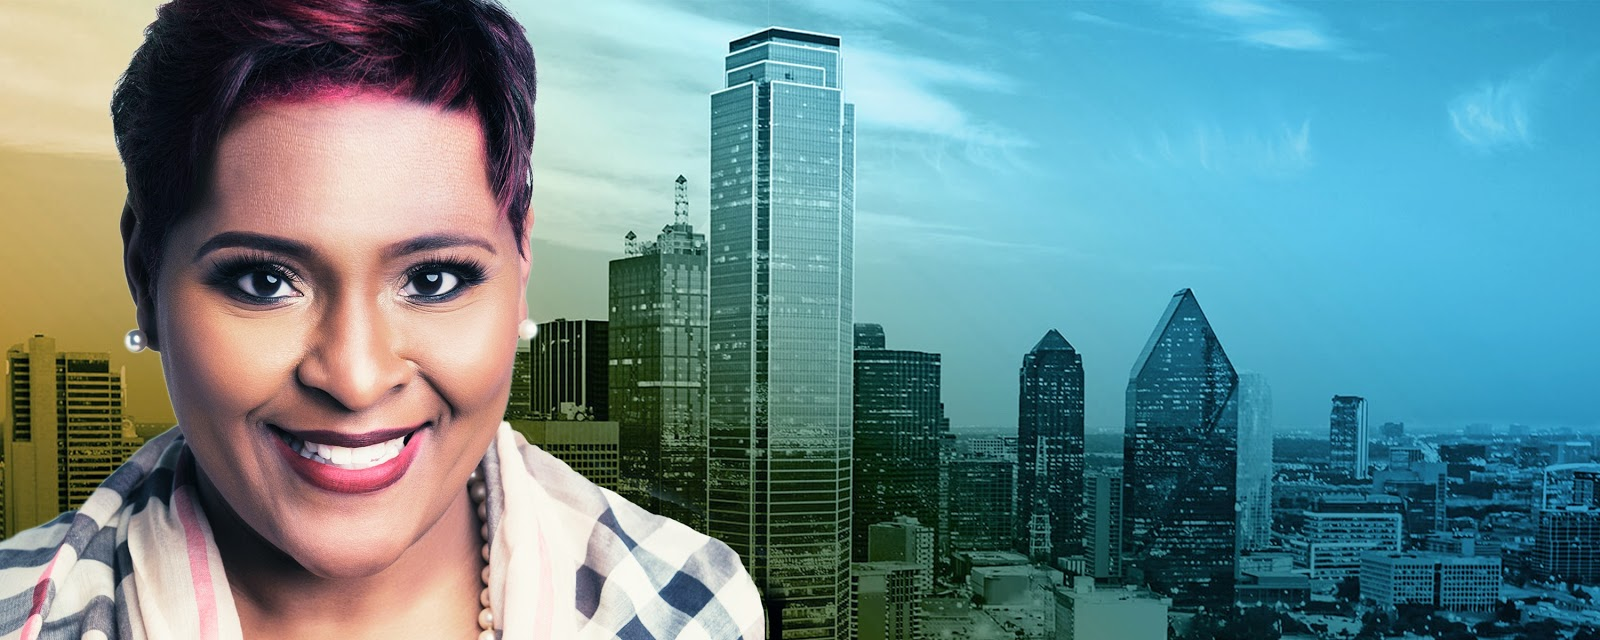 Oak Cliff Native, K Flewellen, Announces Candidacy for City Council District 4 with Voter Drive on February 11